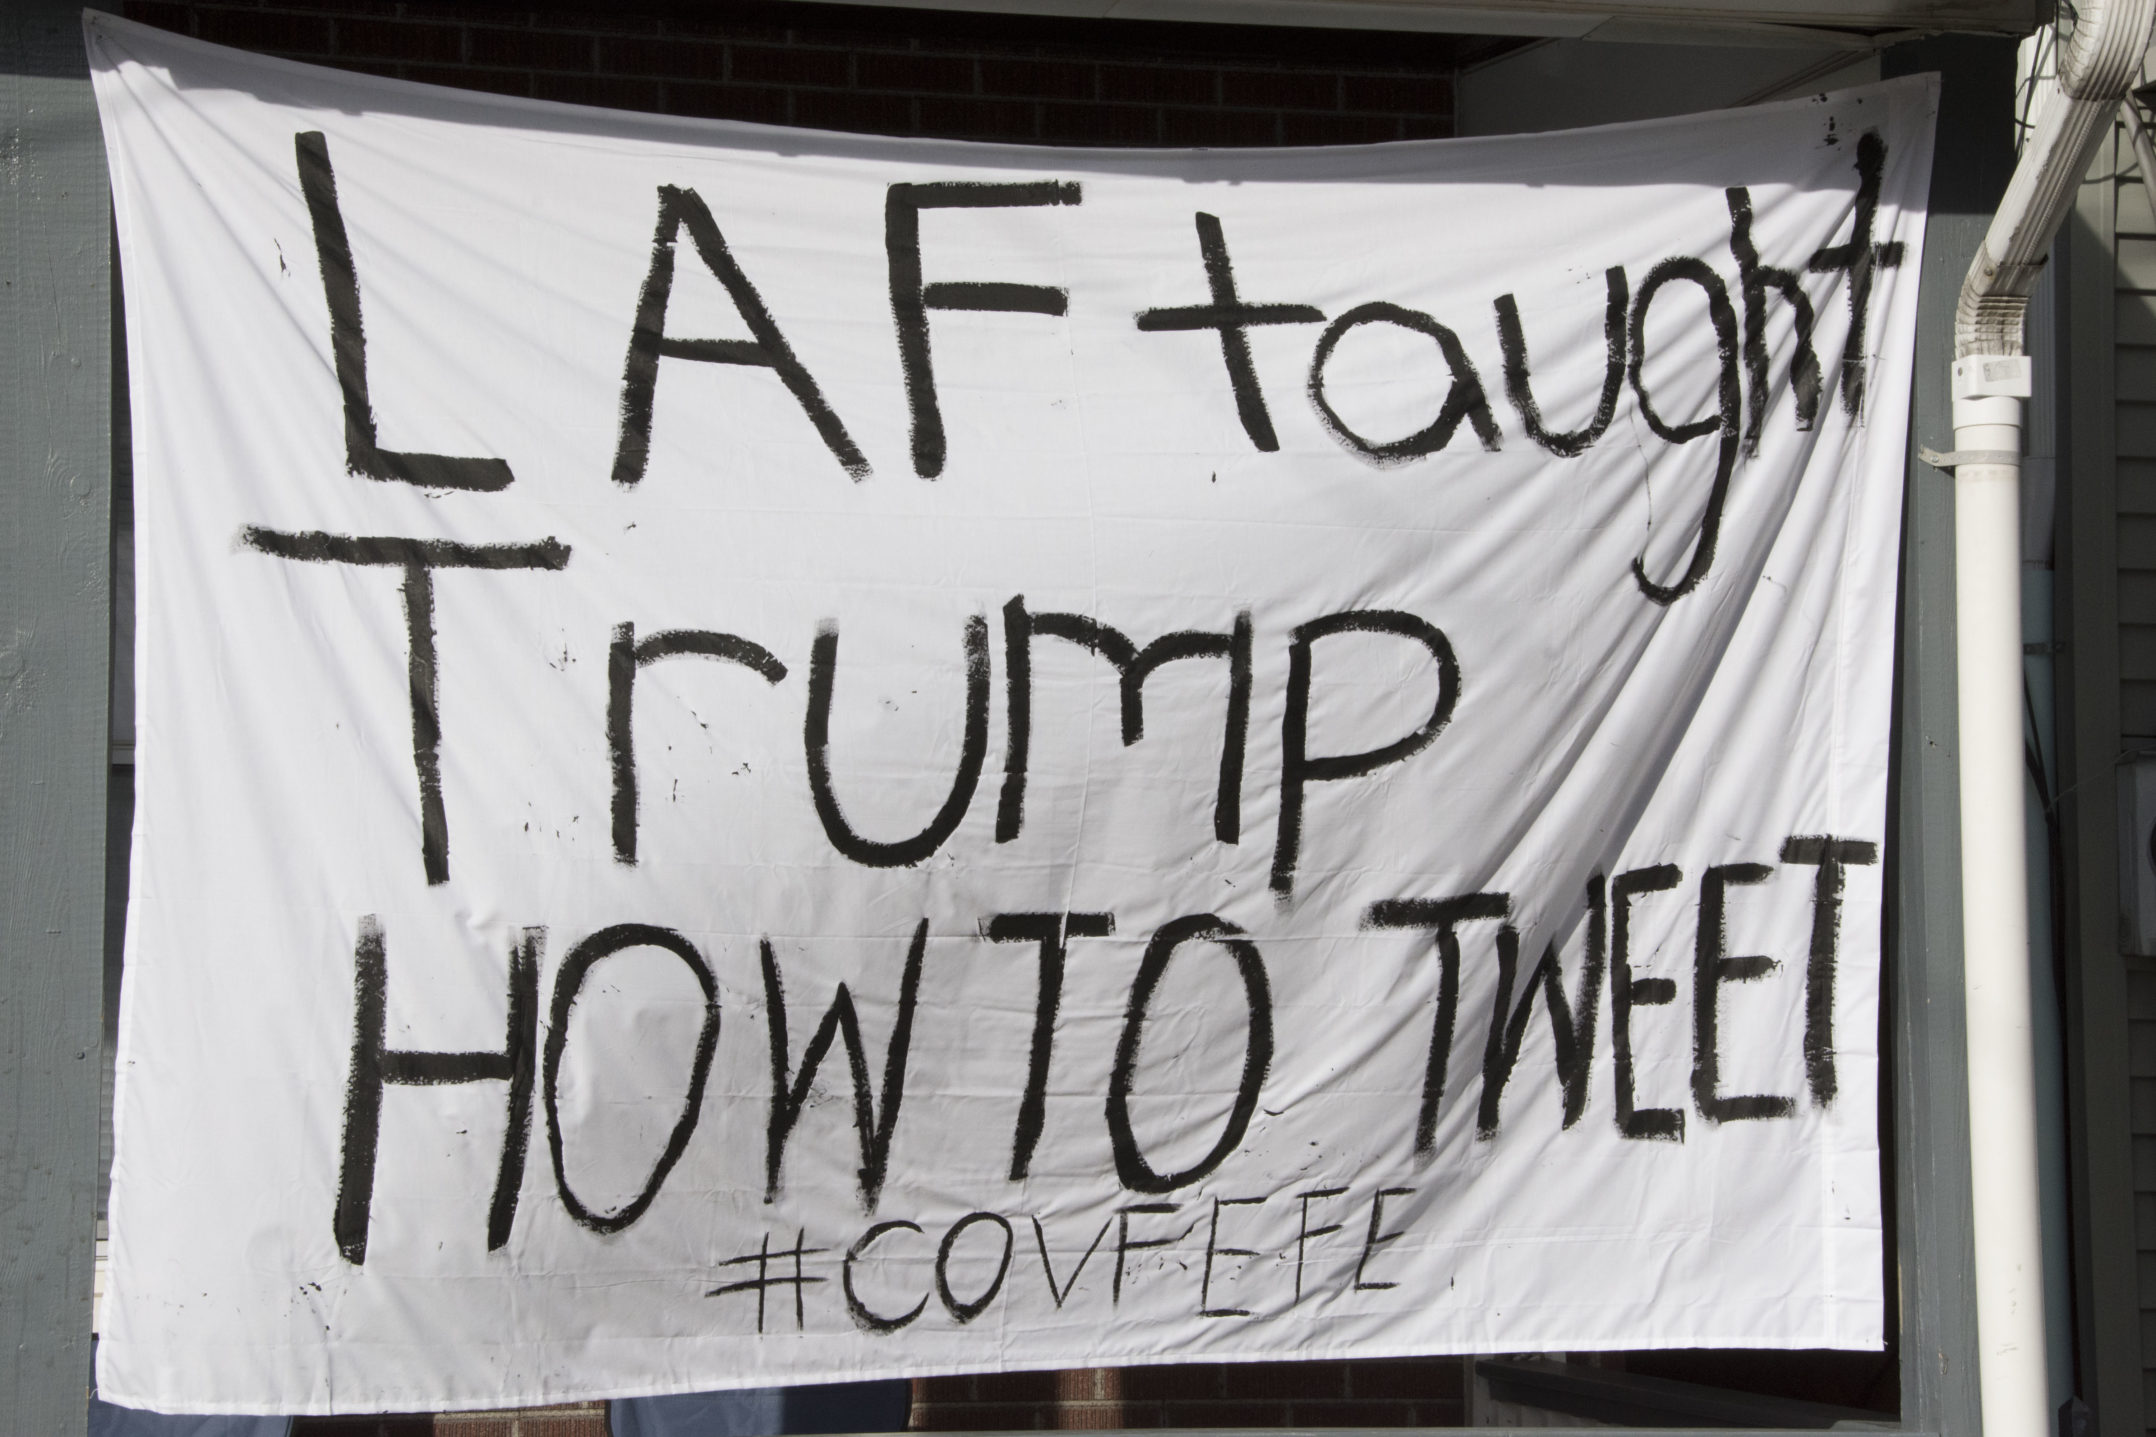 "A sign reading ""Laf taught Trump how to tweet #covfefe"" hangs from a house on E. Fifth Street on Wednesday, Nov. 15, 2017. The sign is referencing President Trump's tweet of the word ""covfefe"" earlier in 2017. (Annie Henry/B&W Staff)"